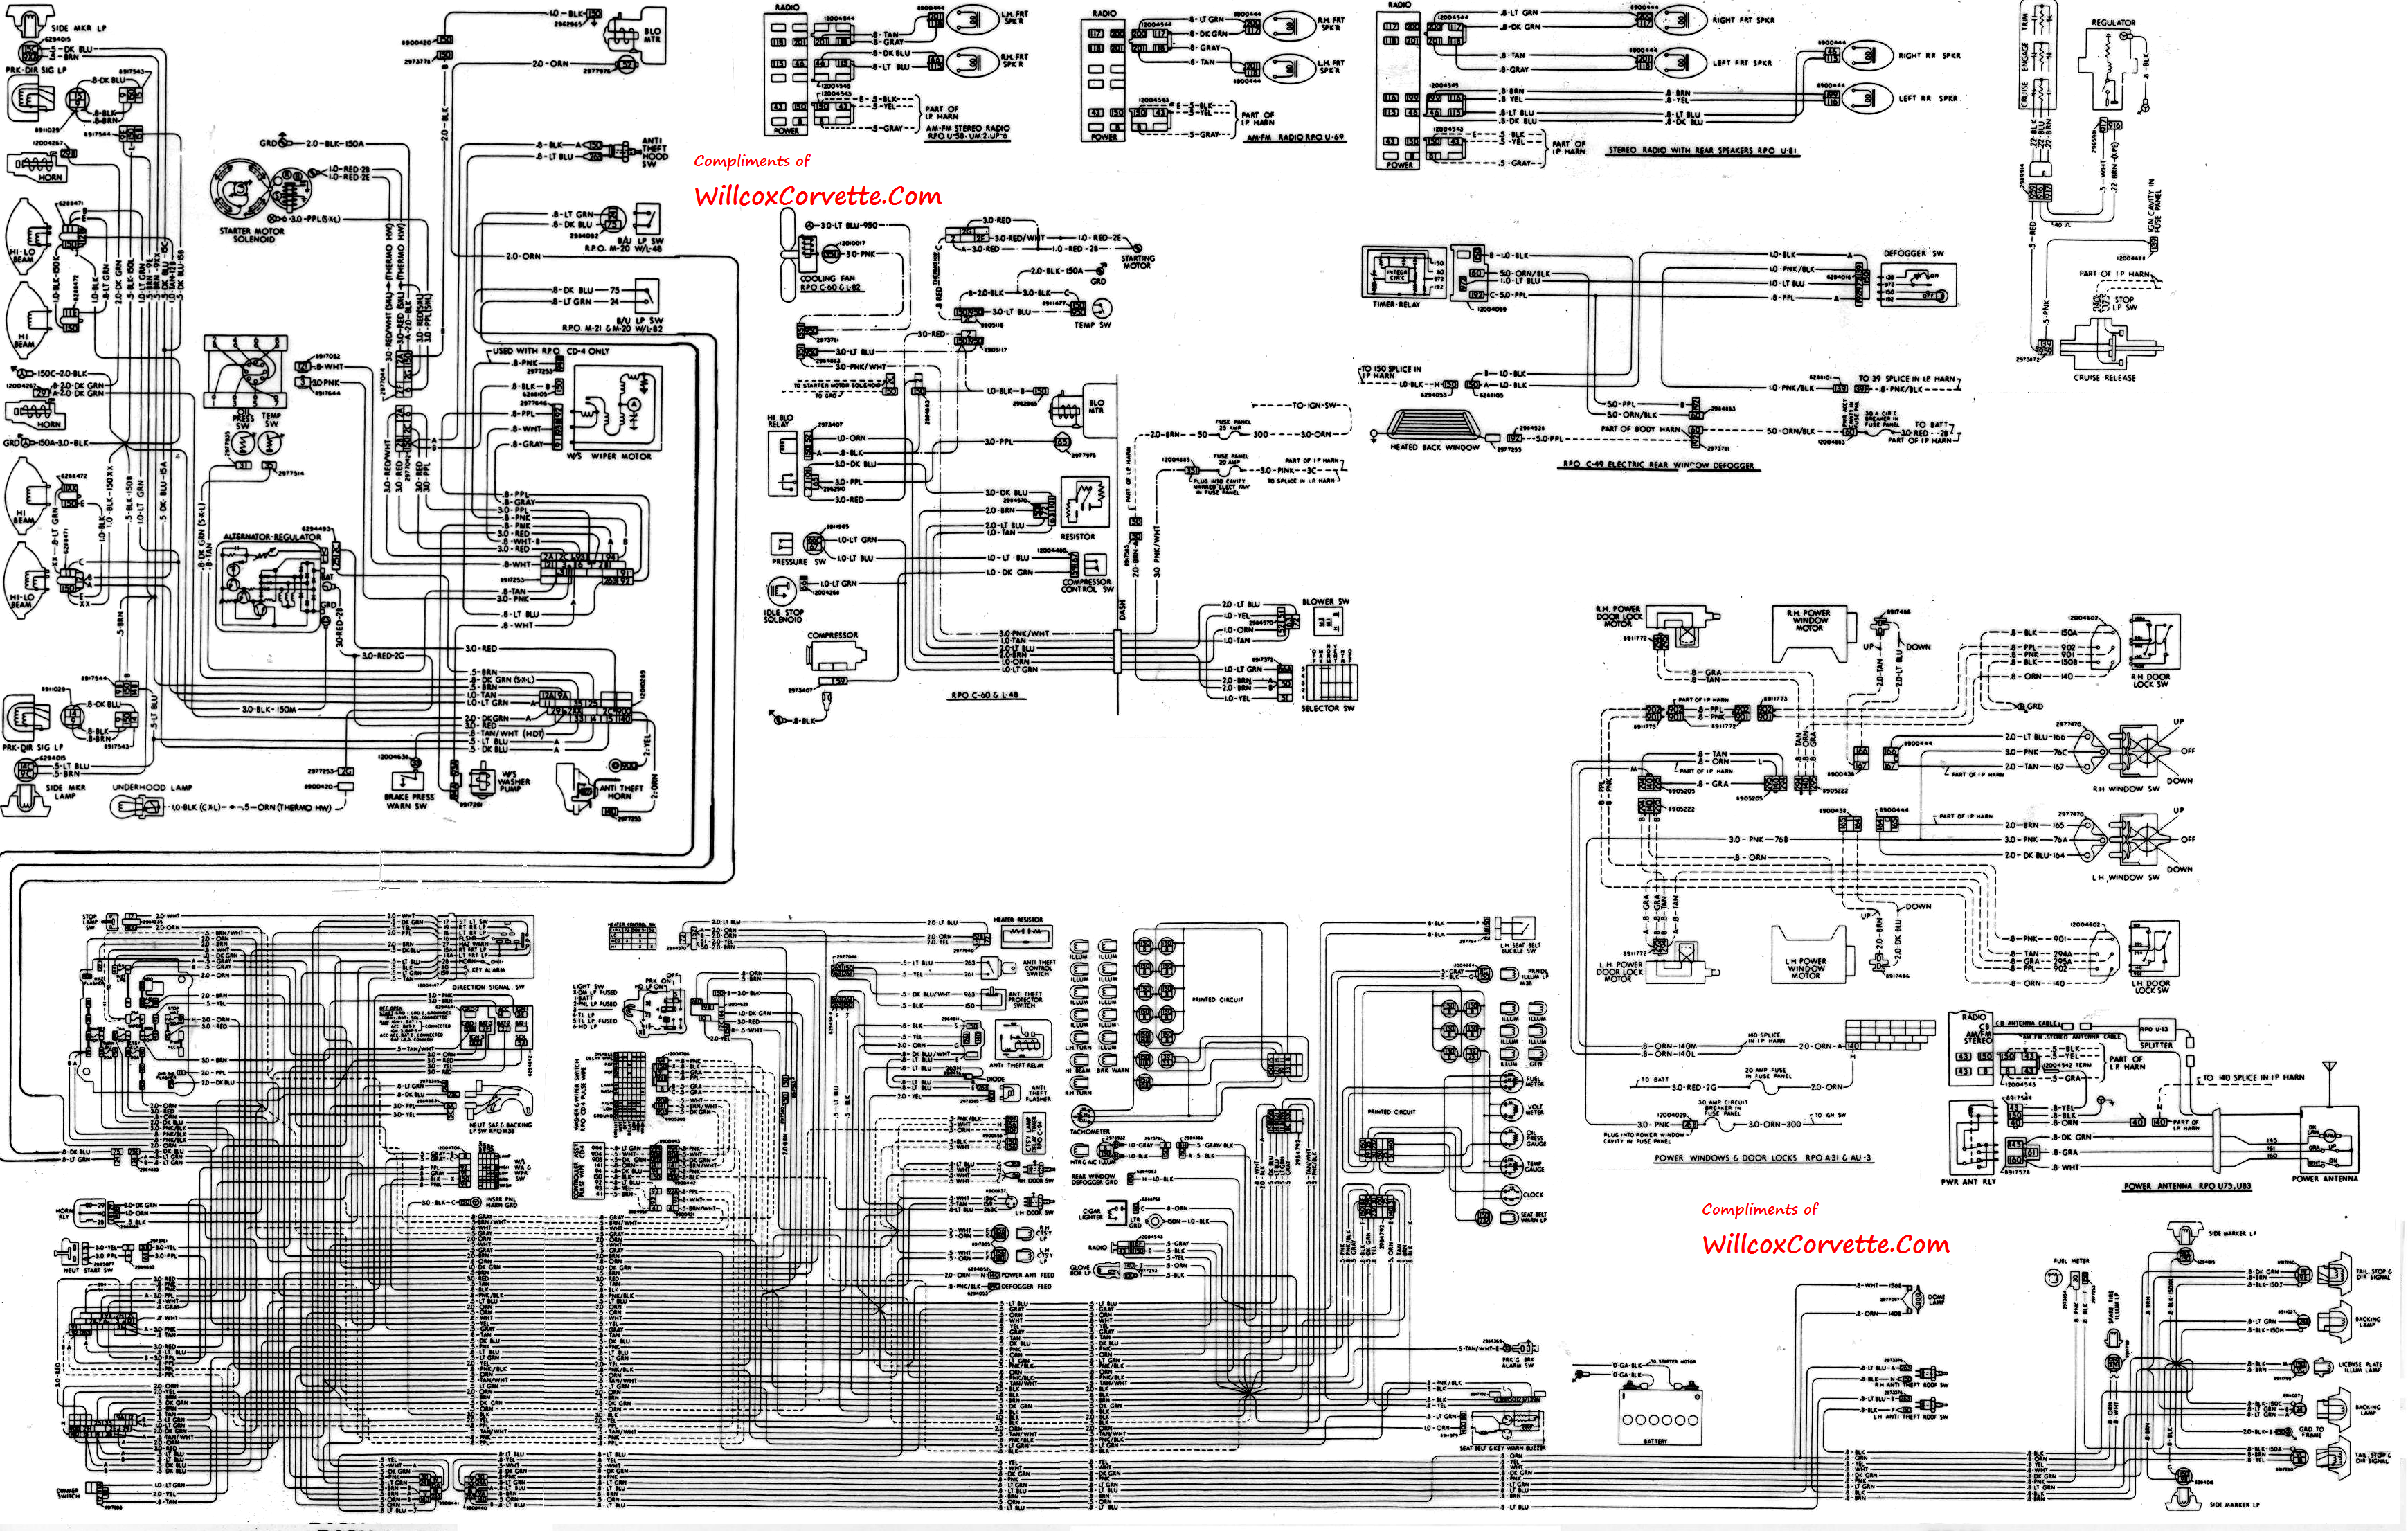 citroen c3 wiring diagram schema diagram database 1984s 10 wiring diagram wiring diagram blog citroen c3 [ 3478 x 2211 Pixel ]